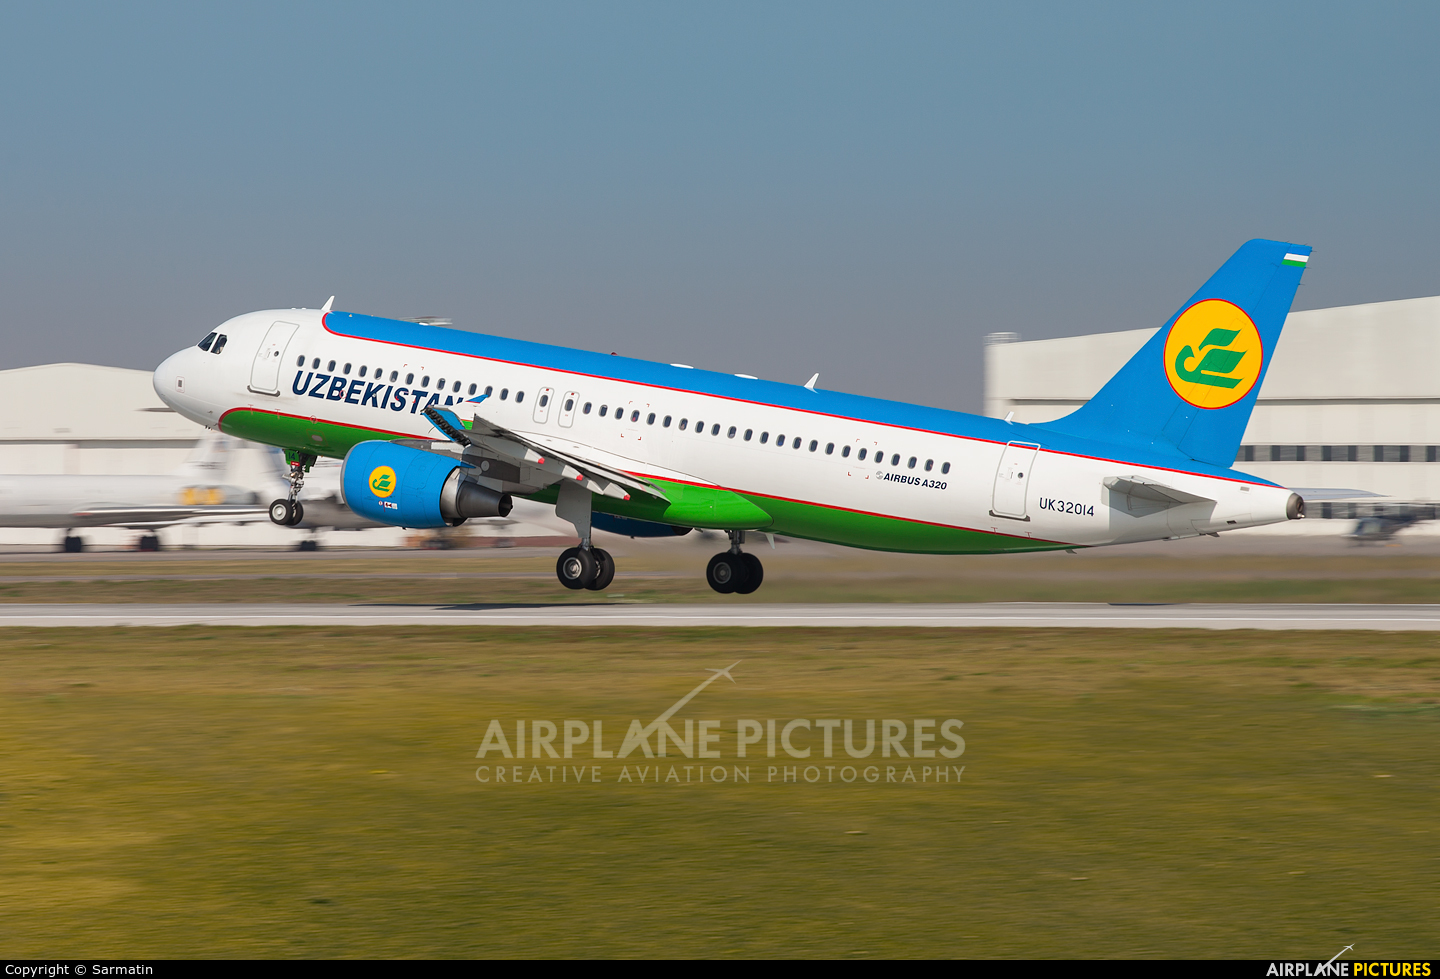 Uzbekistan Airways UK32014 aircraft at Kazan